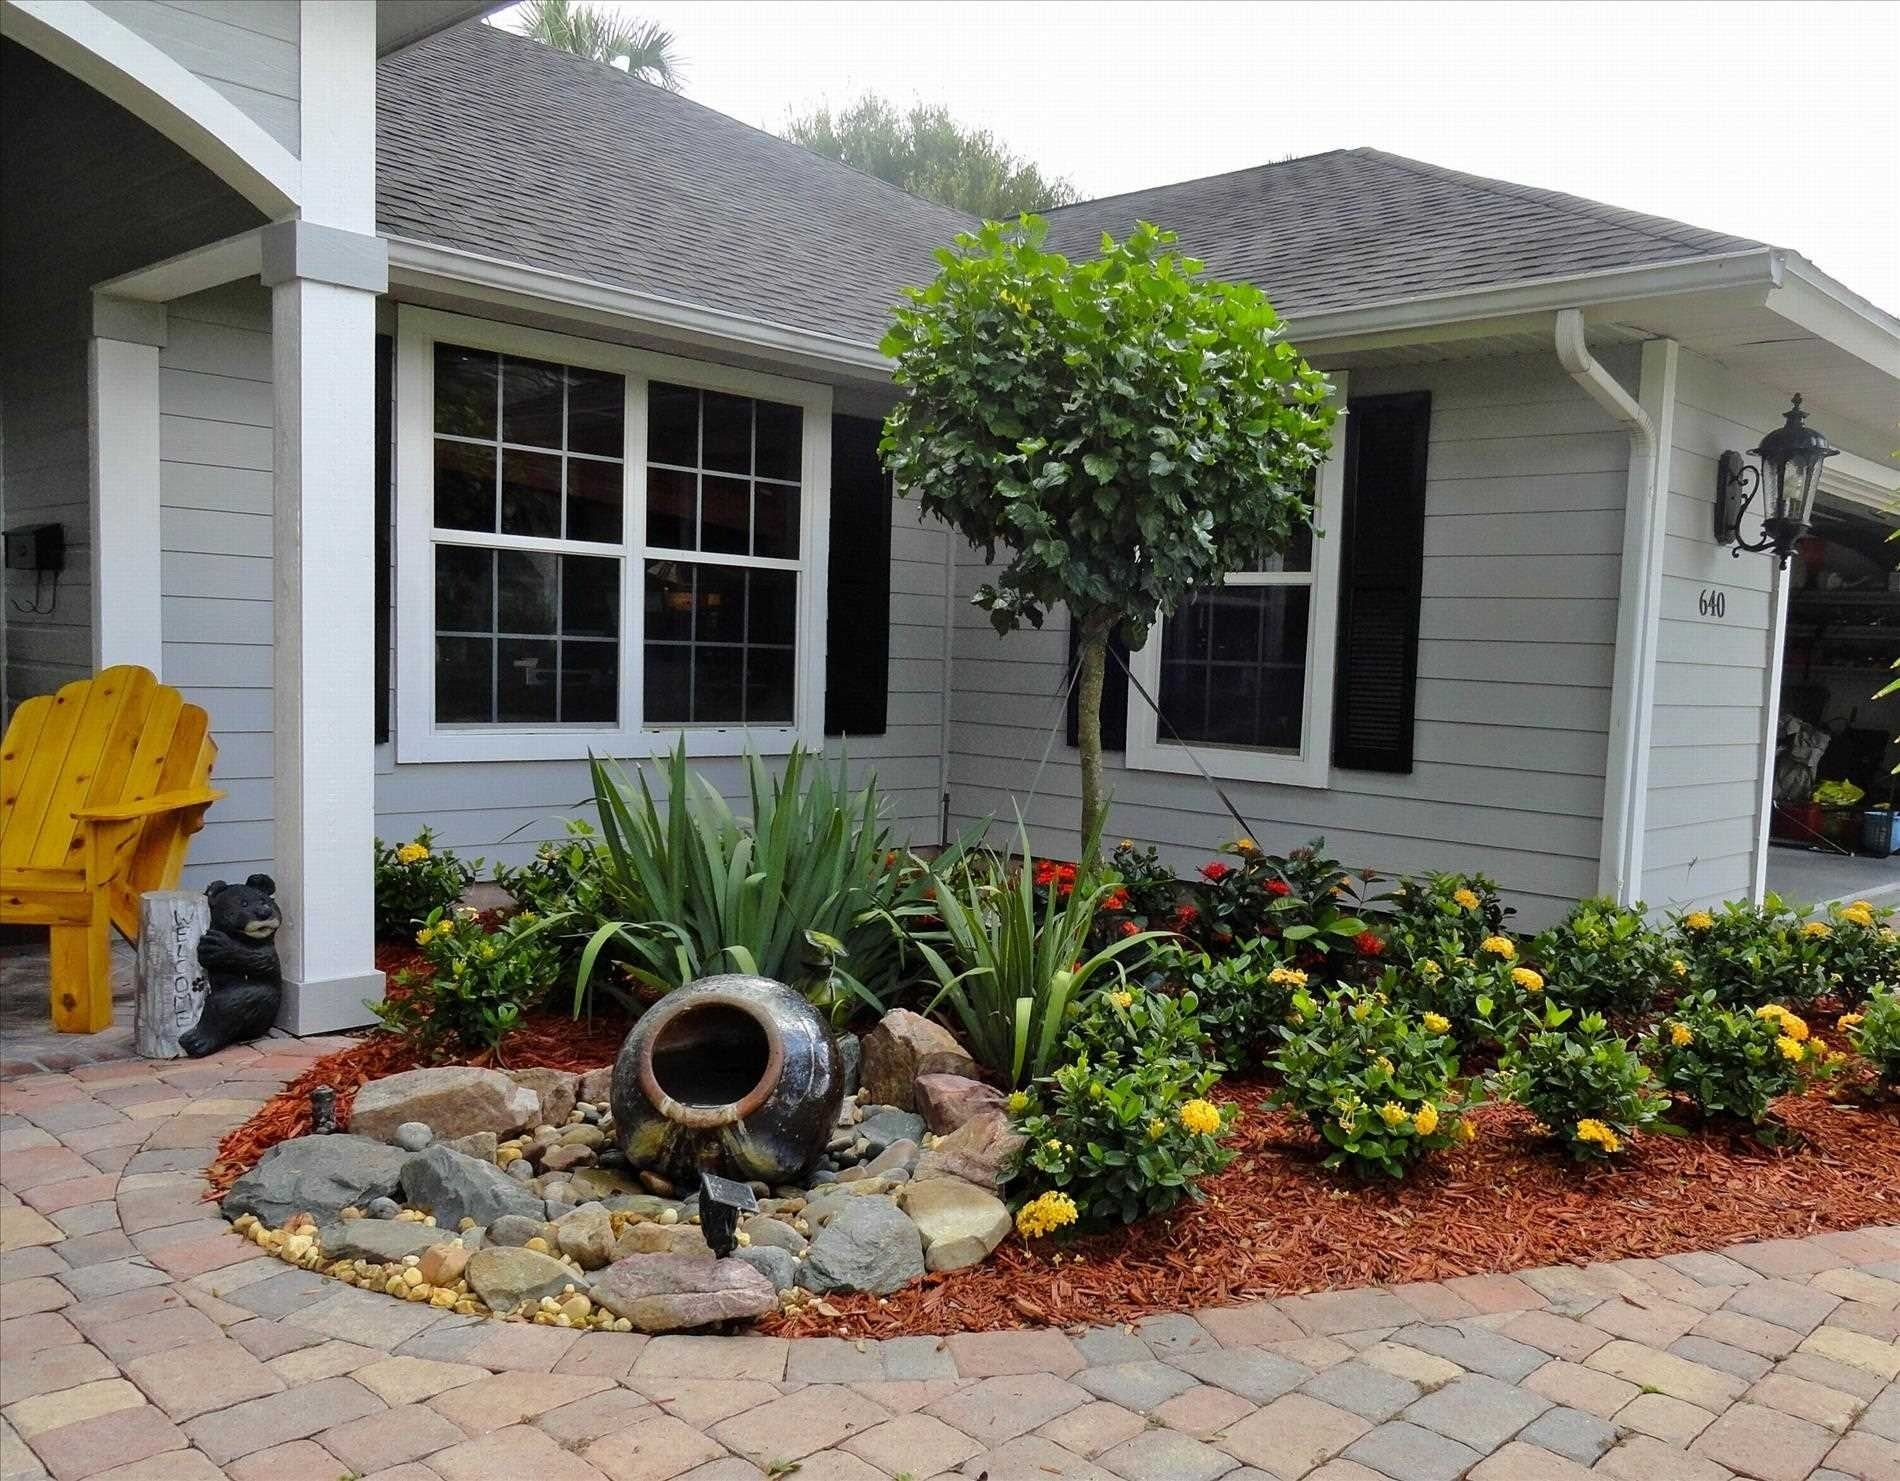 10 Lovable Front Of The House Landscaping Ideas florida garden ideas elegant best florida landscaping ideas for 2020